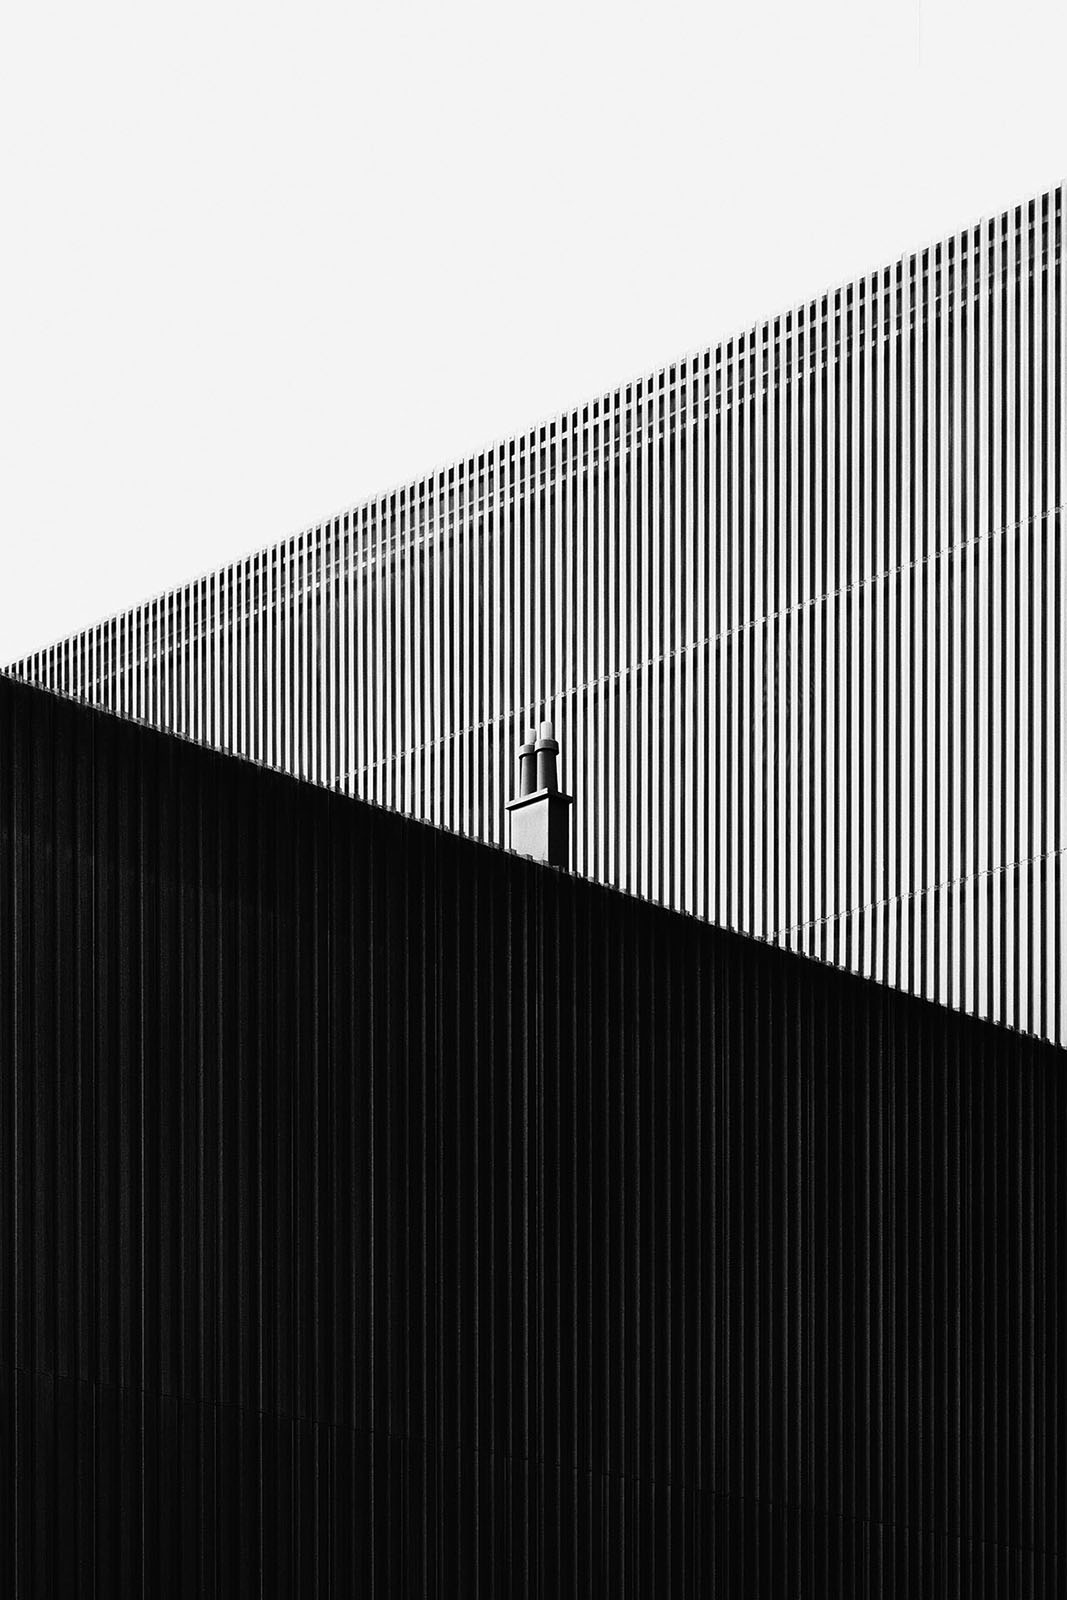 Exhibition Hall A, Innsbruck, Austria - Game of Shapes - Black & White Fine Art Architecture Series